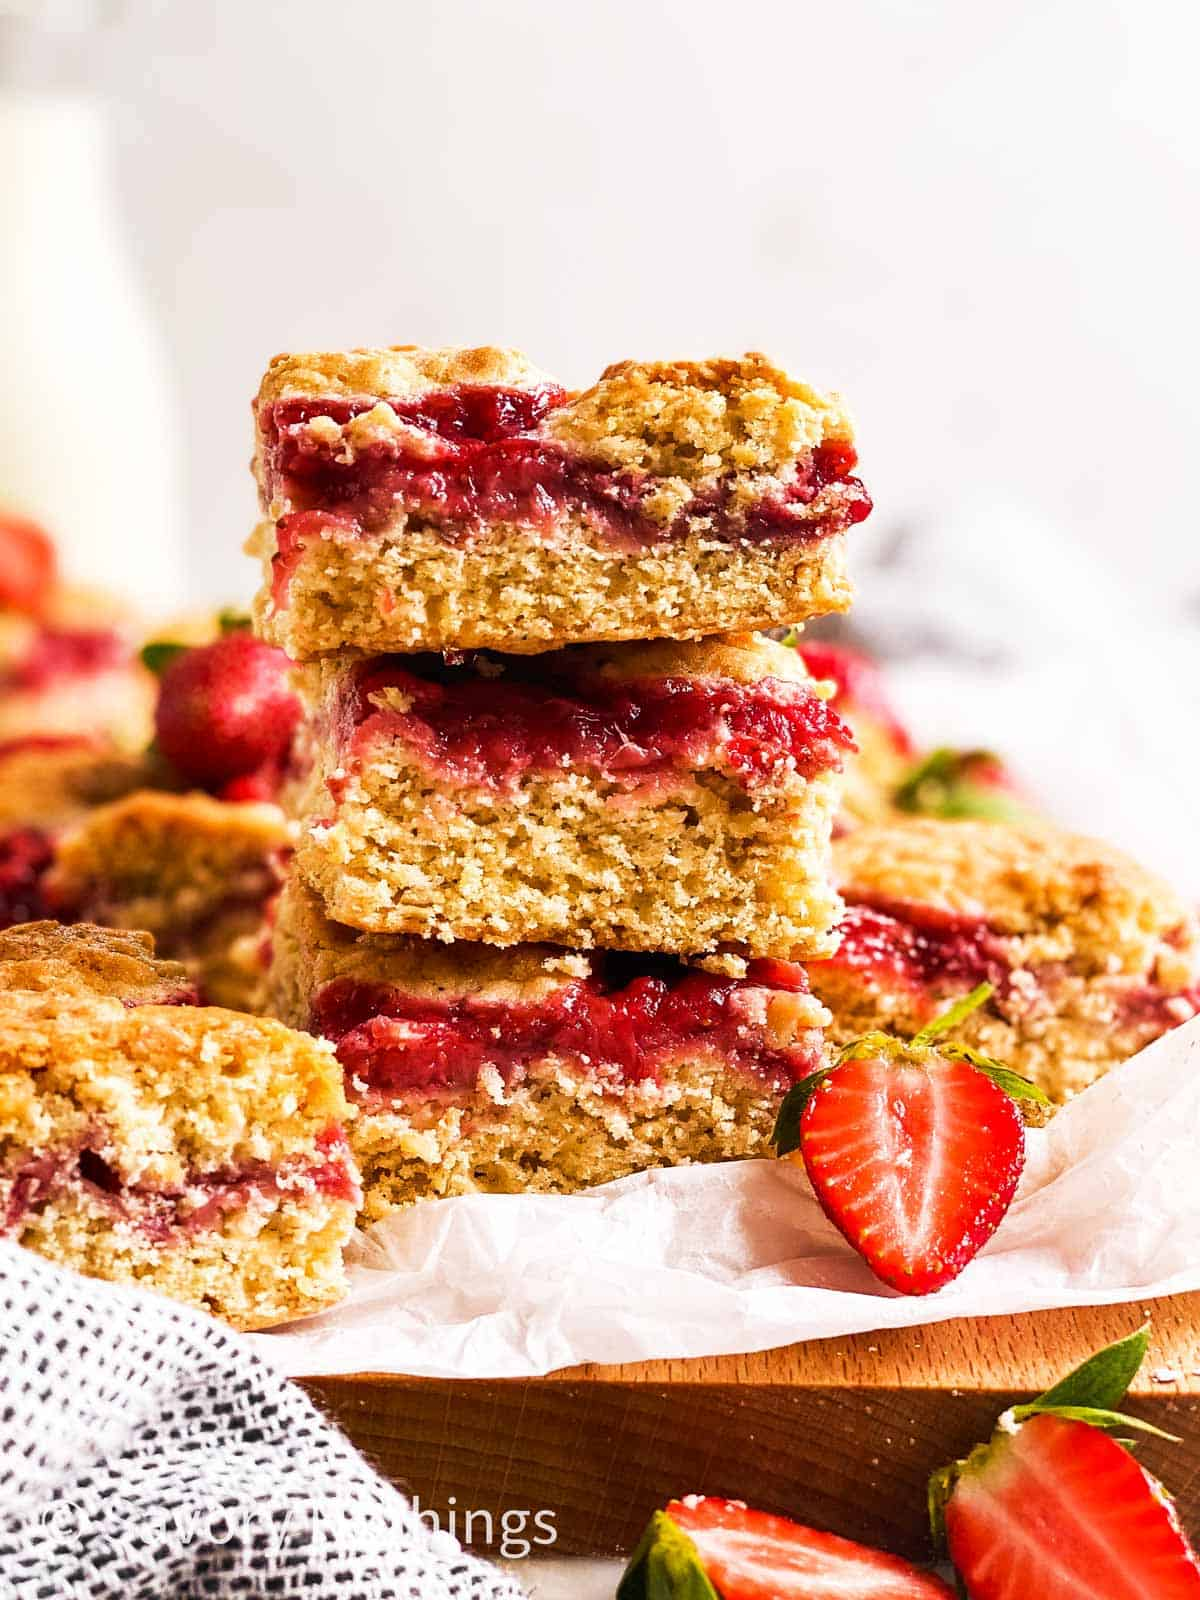 stack of three strawberry oatmeal bars on wooden board line with white baking parchment, surrounded by fresh strawberries